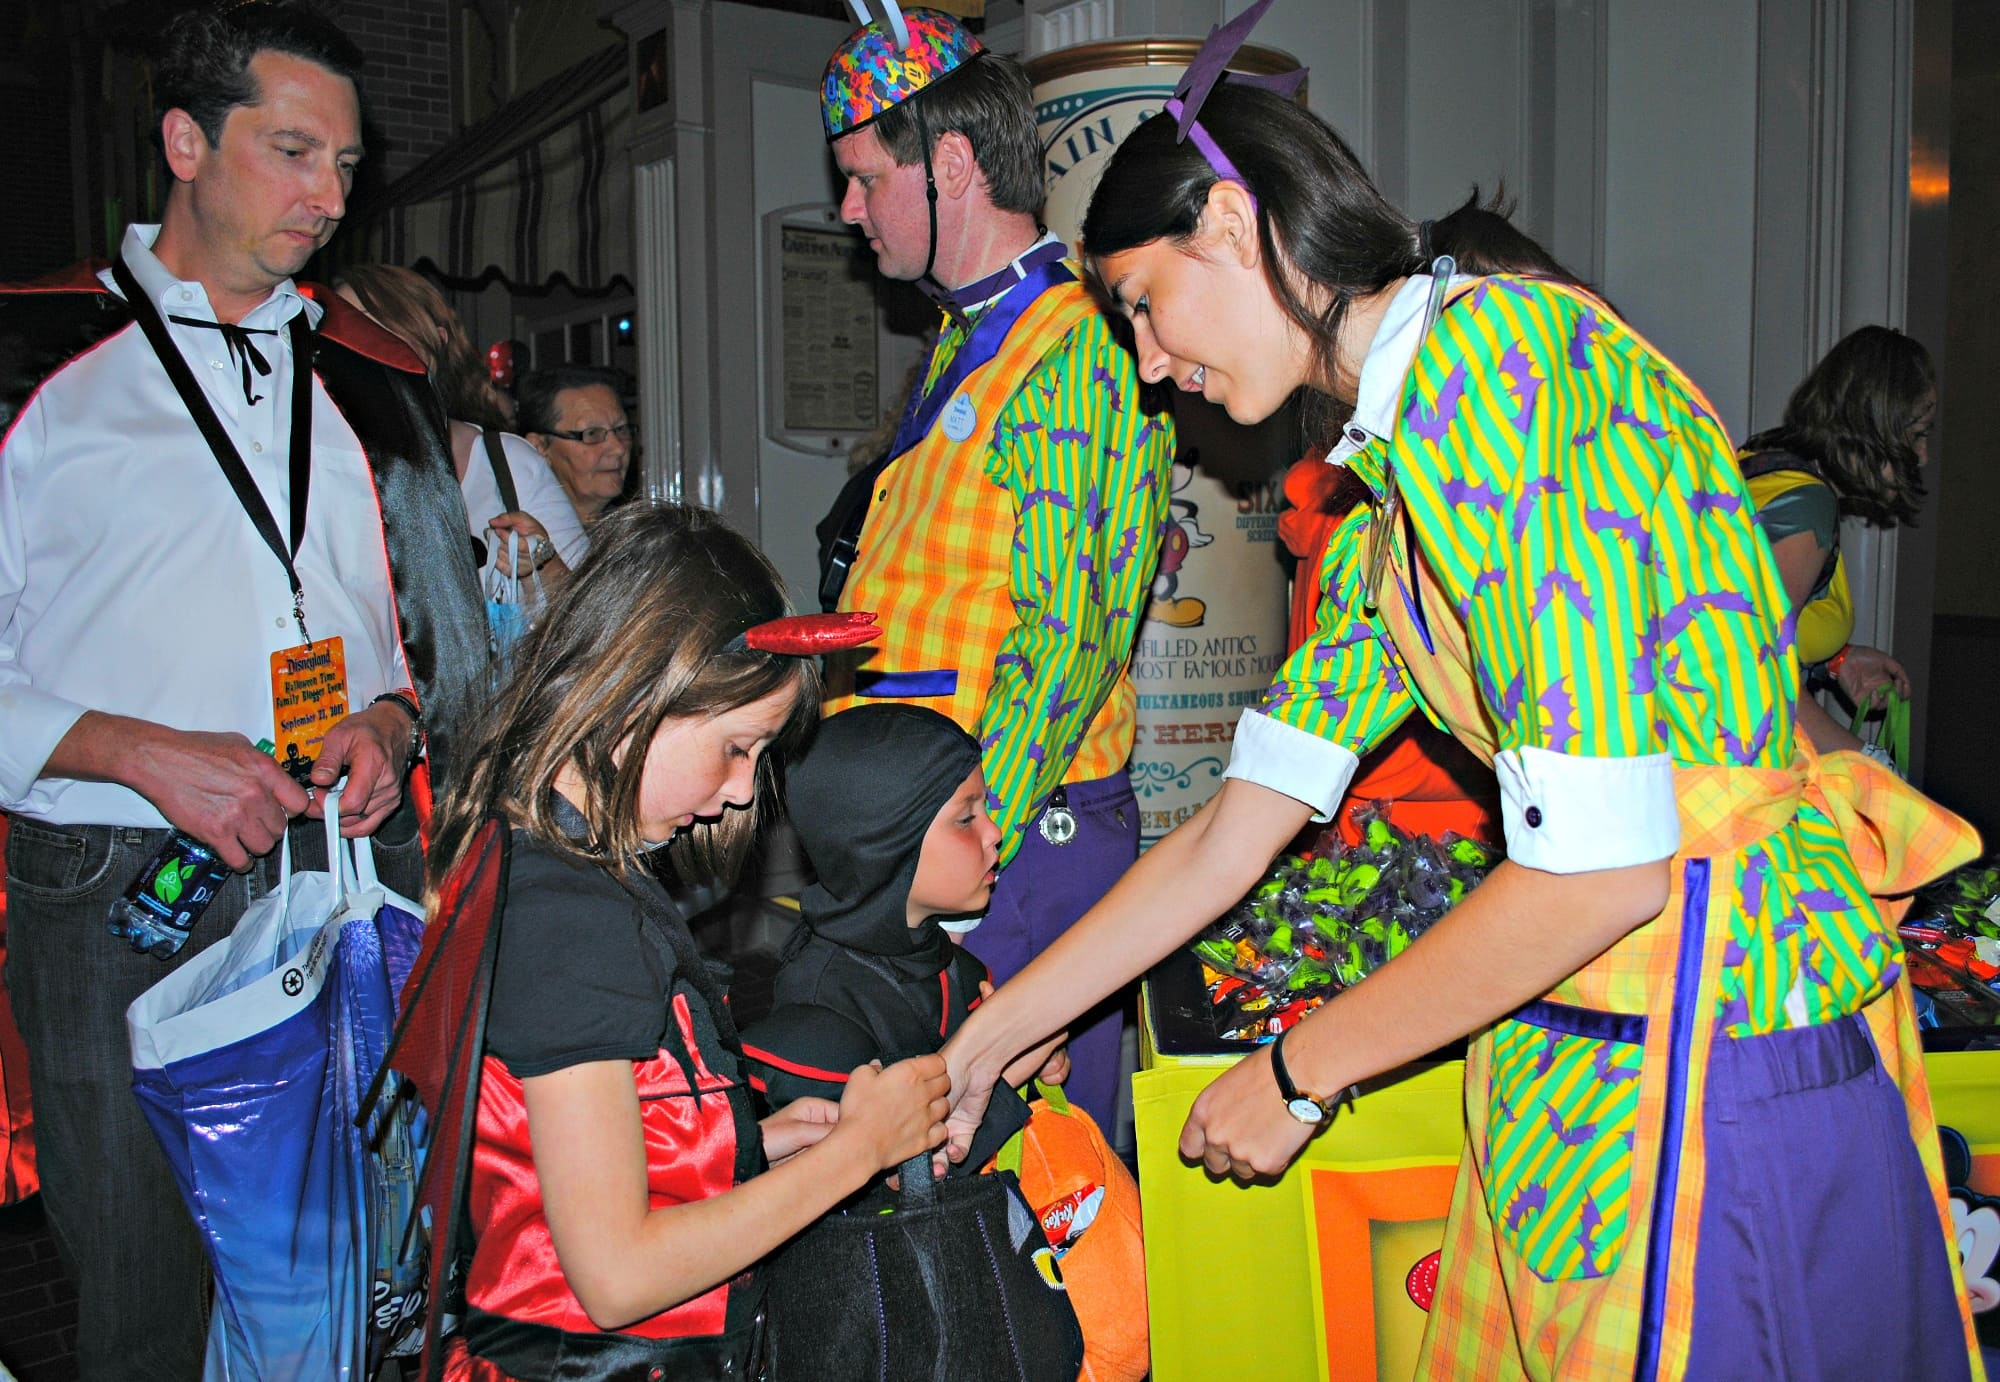 Trick-or-treating at Mickey's Halloween Party with kids